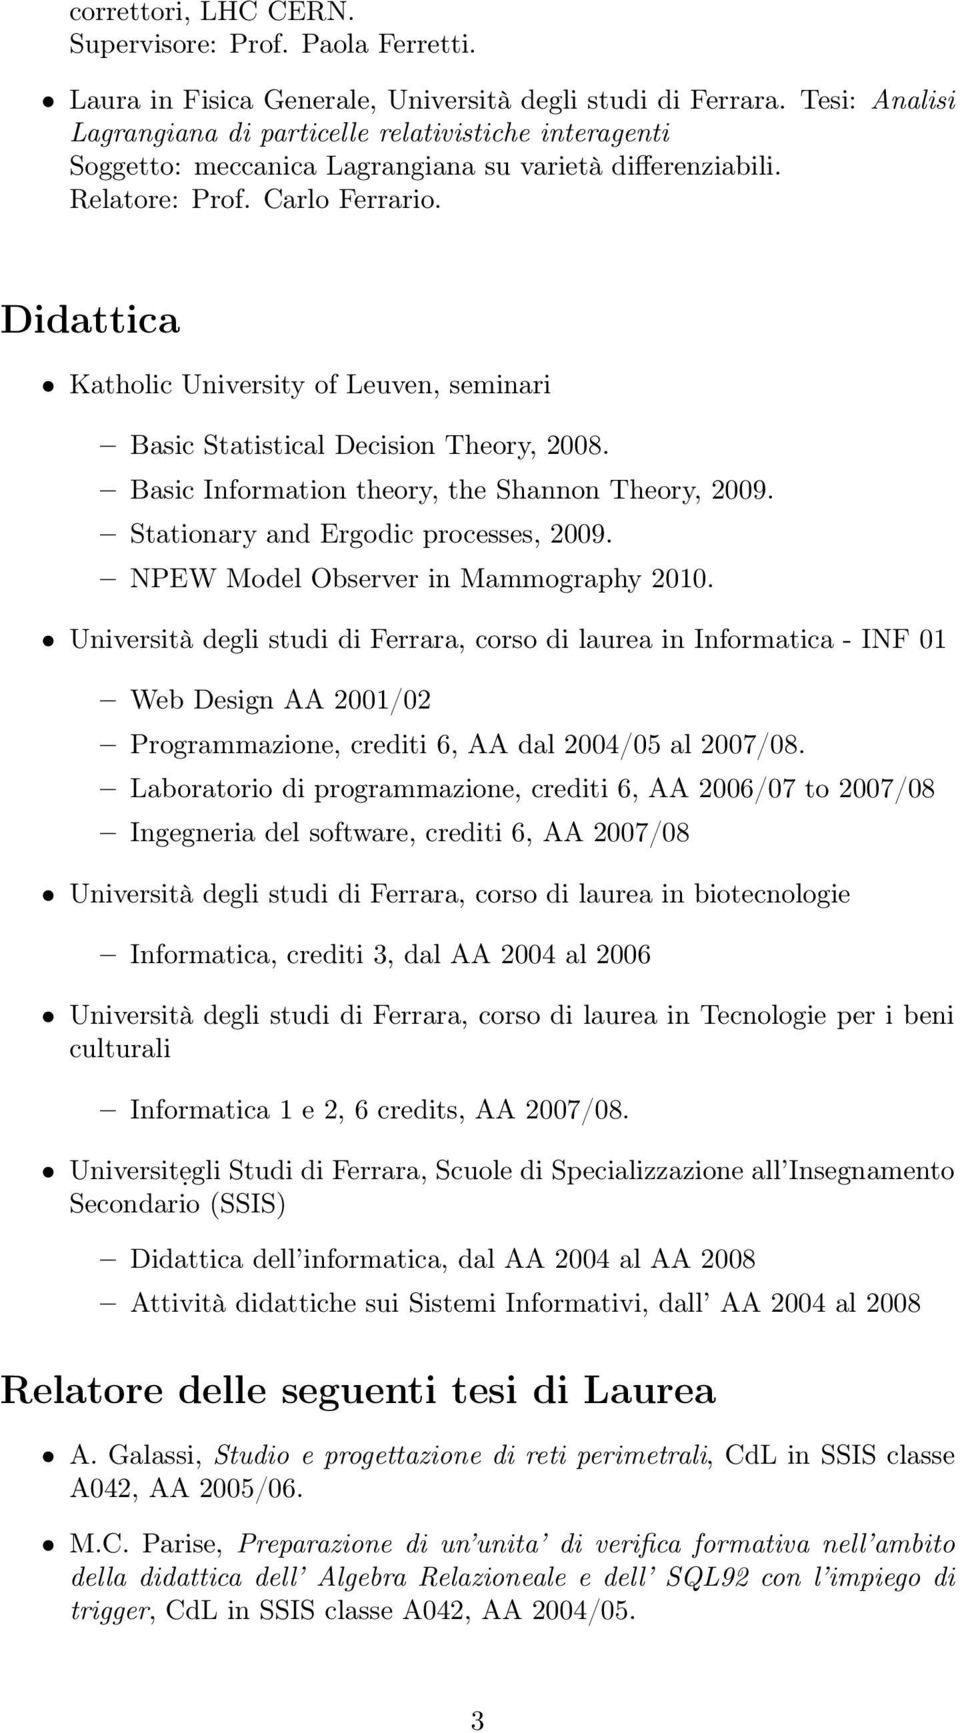 Didattica Katholic University of Leuven, seminari Basic Statistical Decision Theory, 2008. Basic Information theory, the Shannon Theory, 2009. Stationary and Ergodic processes, 2009.